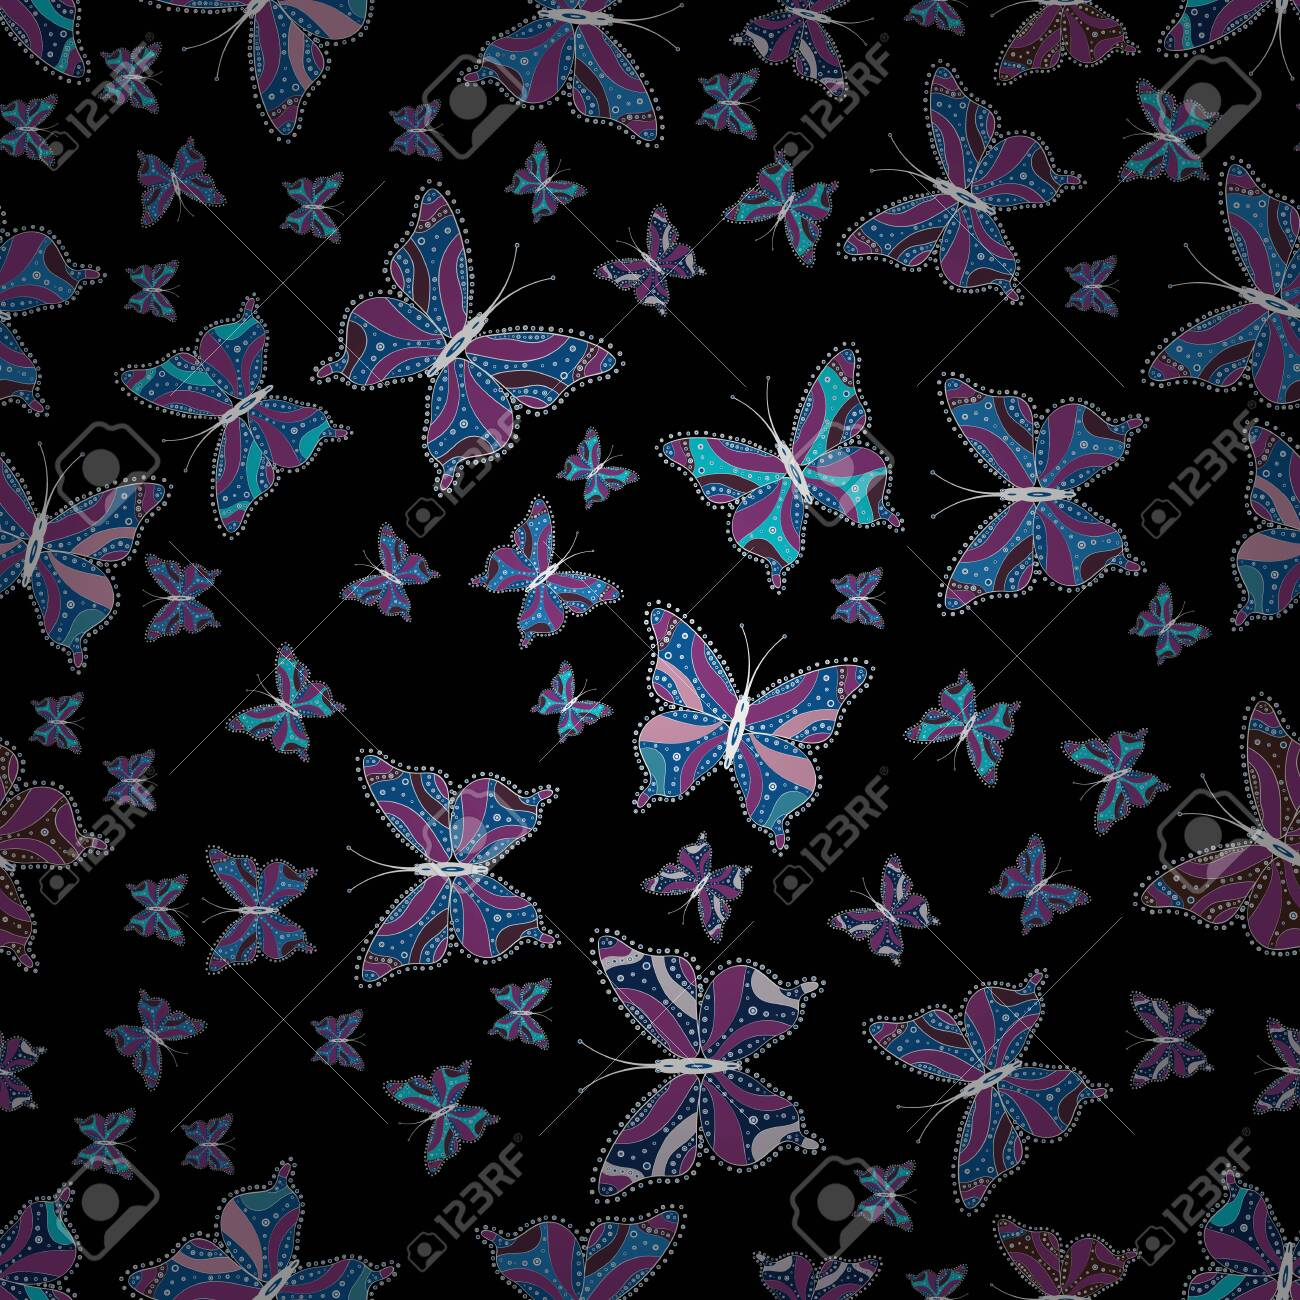 Vector Illustration Of Watercolor Butterflies On Blue Purple Royalty Free Cliparts Vectors And Stock Illustration Image 123603810